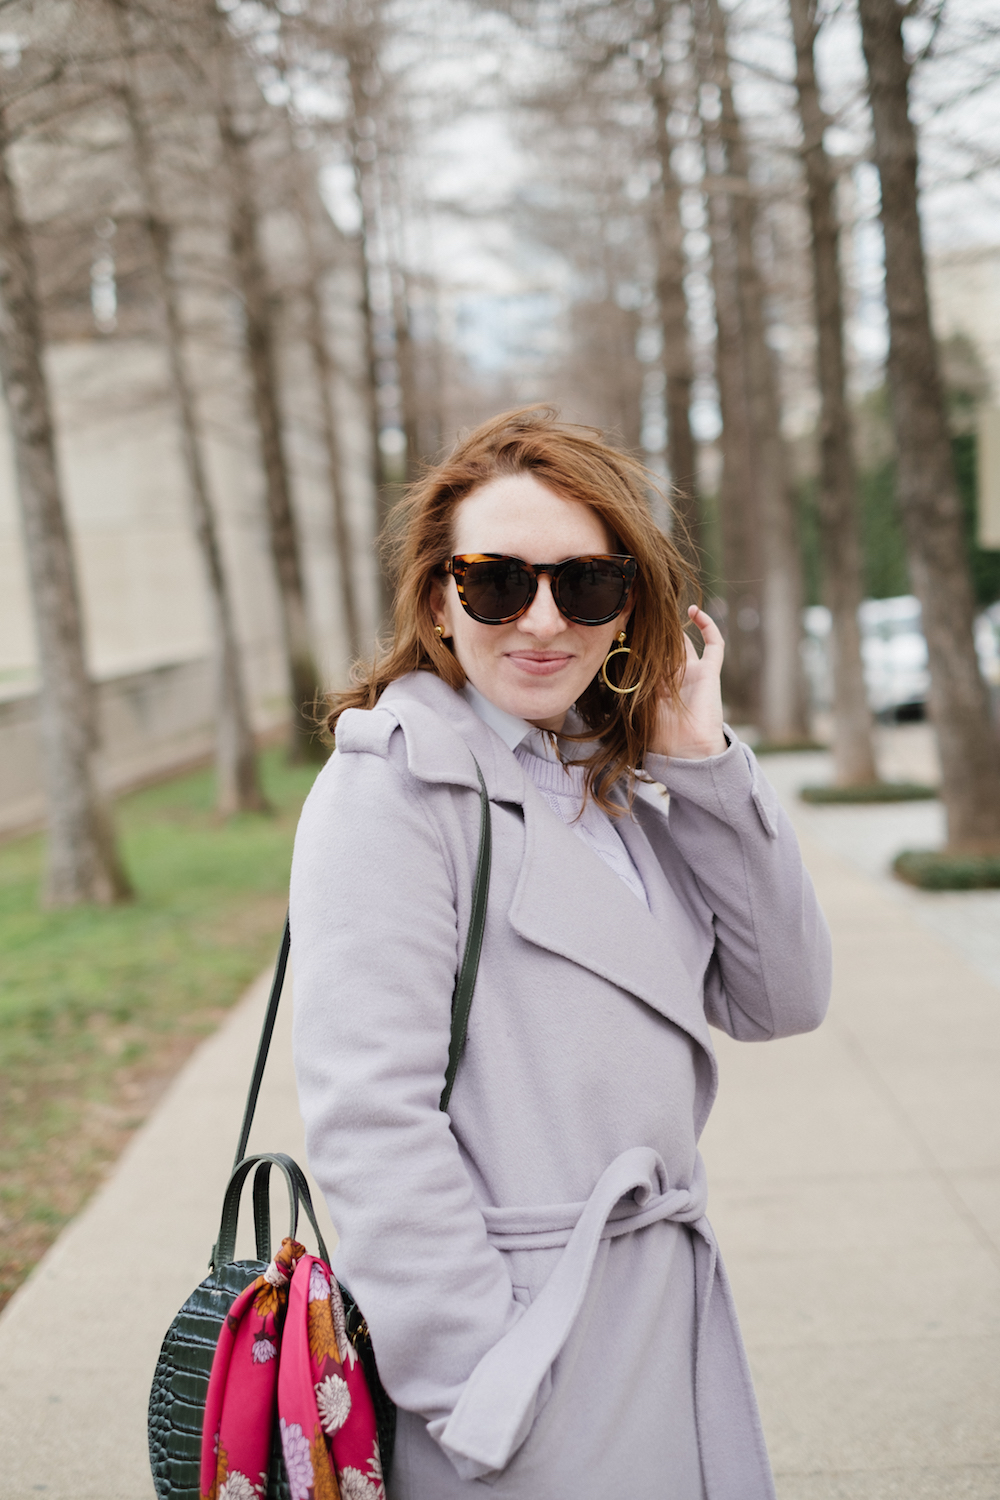 Gold Circle Earrings | Lavender Coat | Lavender Cable-Knit Sweater | Green Circle Bag | How to Style a Silk Scarf | How to Dress Colorfully in Winter | Colorful Winter Outfit Inspiration via Dallas Fashion Blogger, Glitter & Spice